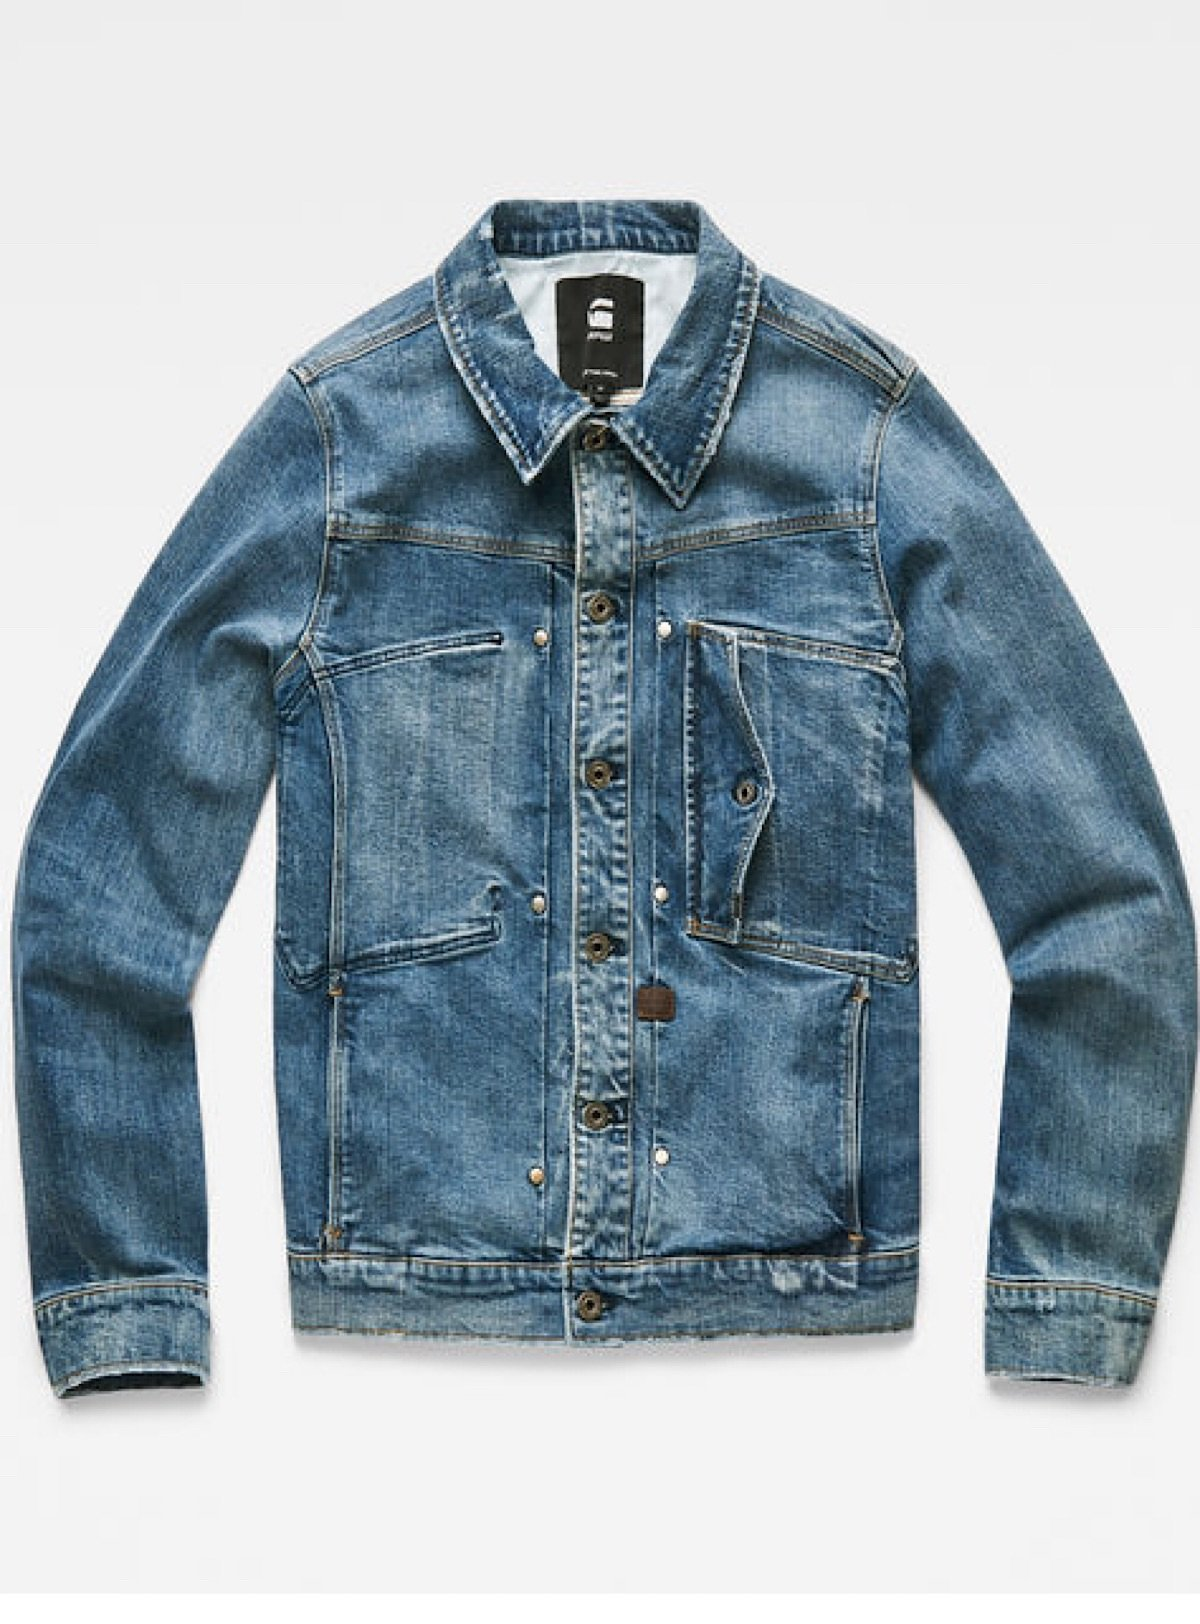 G-Star Jacket - Scutar Slim - Blue Denim - D14499